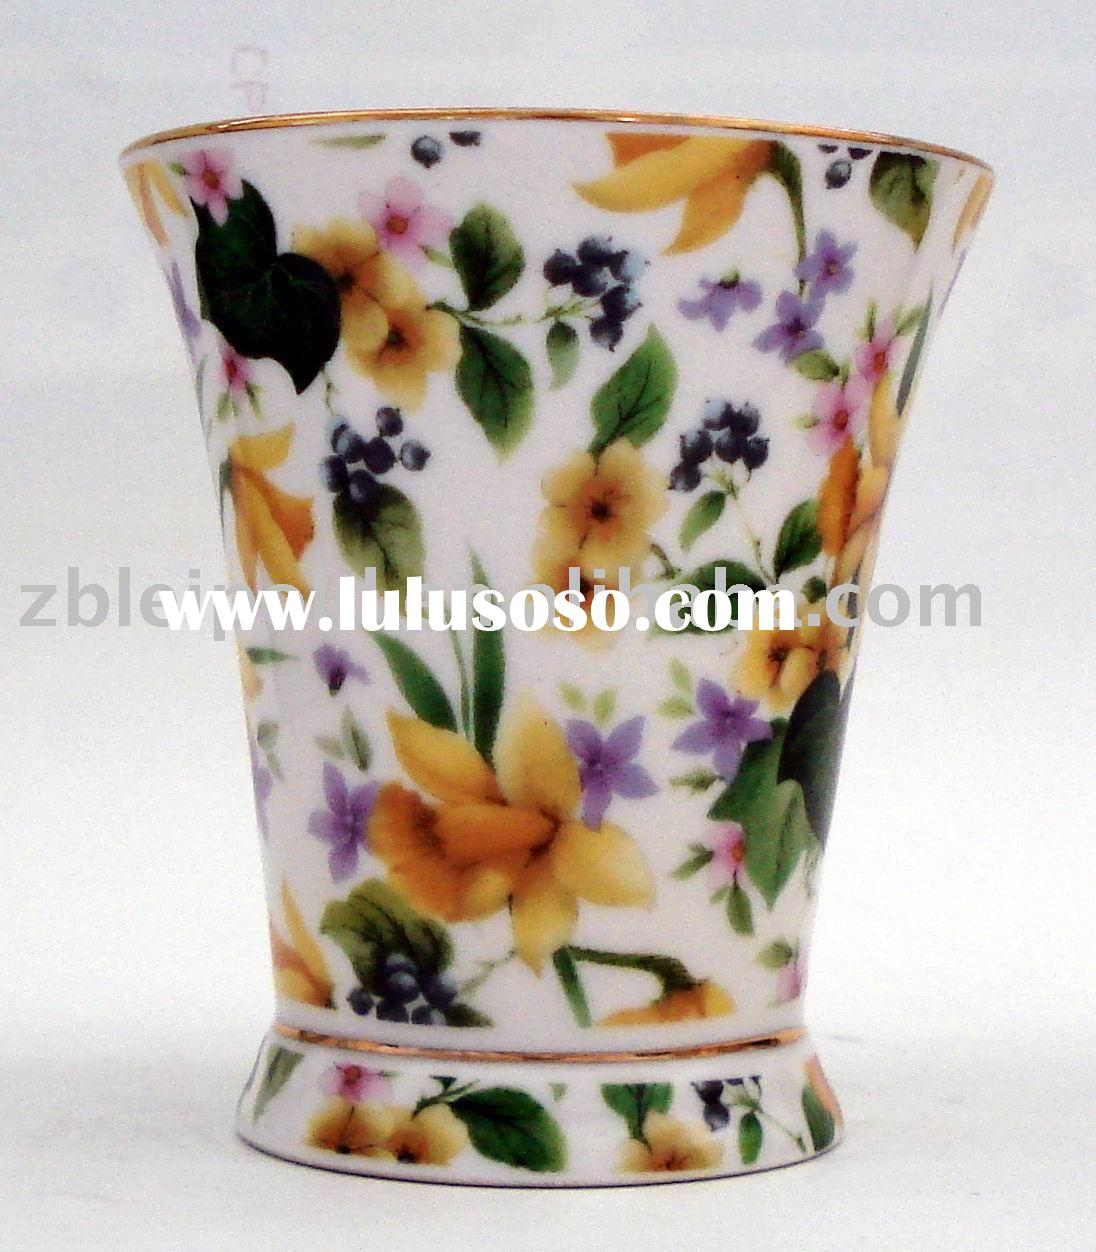 fine bone china mug cup with colorful design